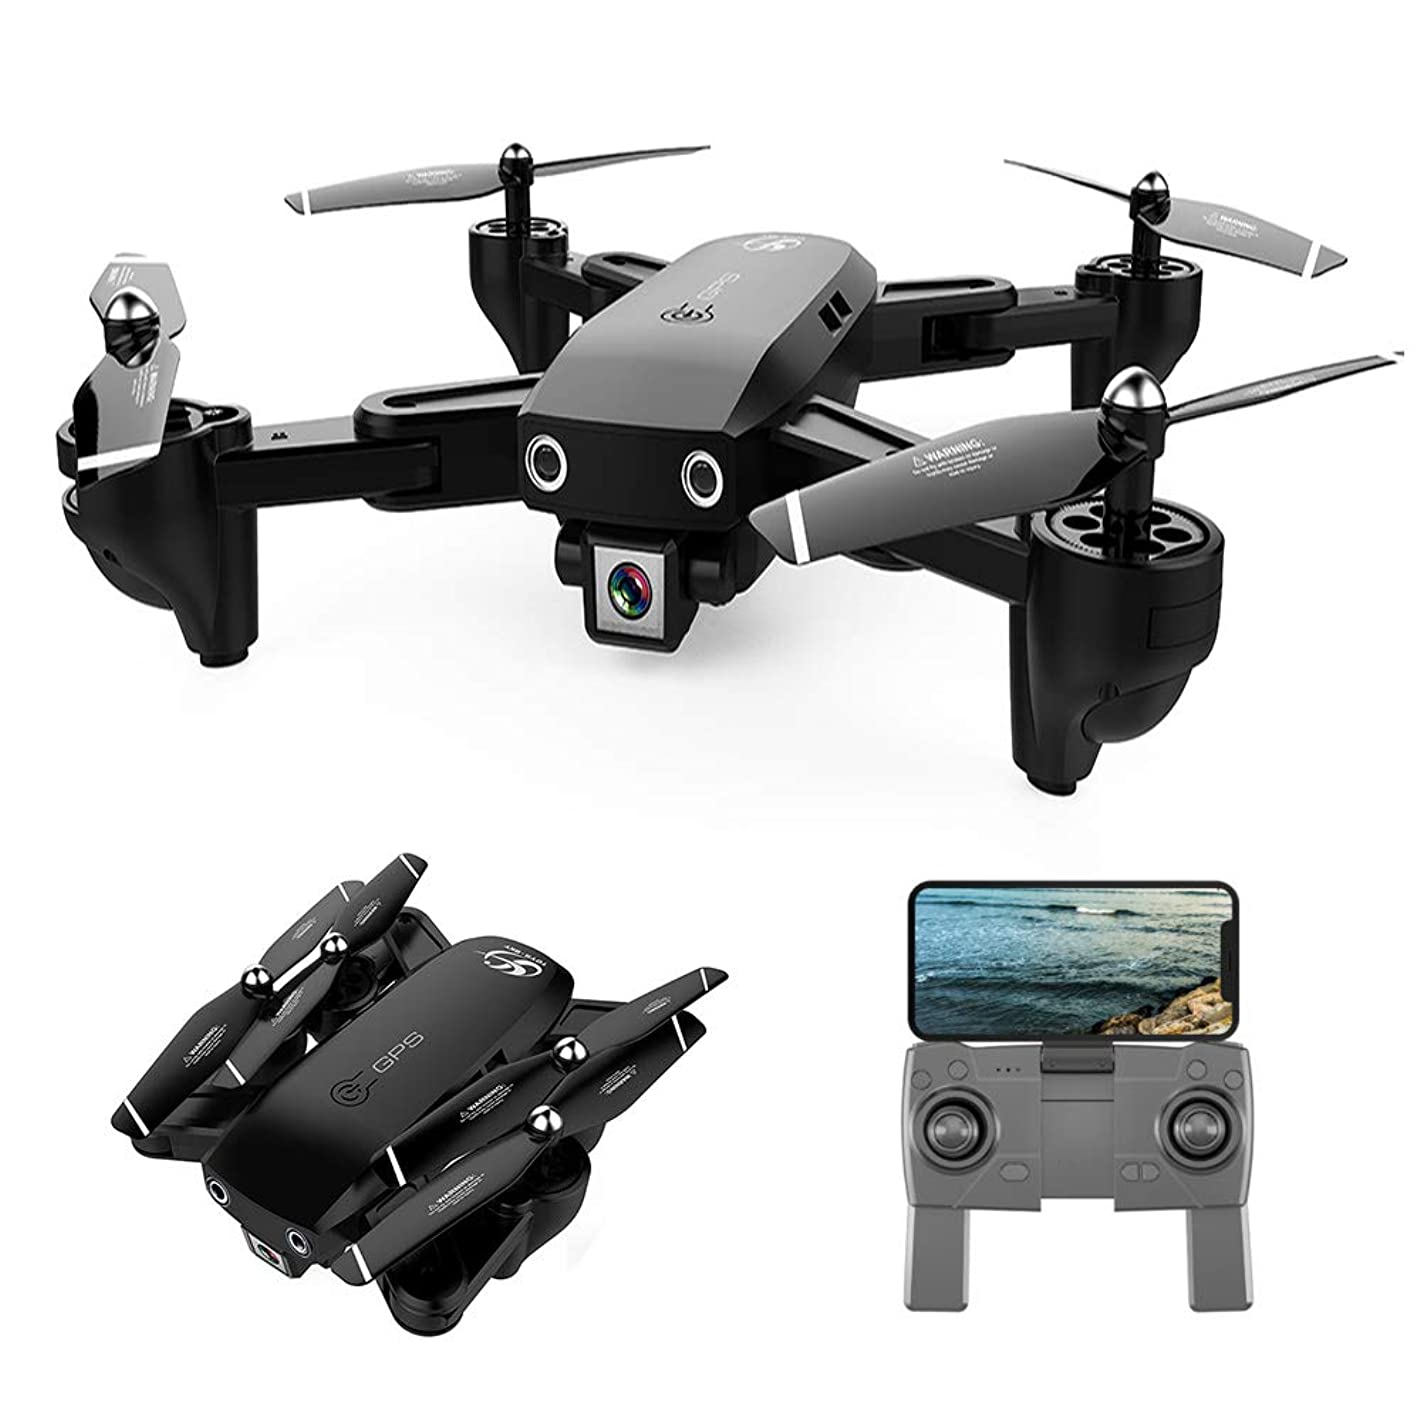 GoolRC CSJ S166 GPS RC Drone with 1080P HD Camera Follow Me Auto Return WiFi FPV Live Video Gesture Photos RC Quadcopter for Adults